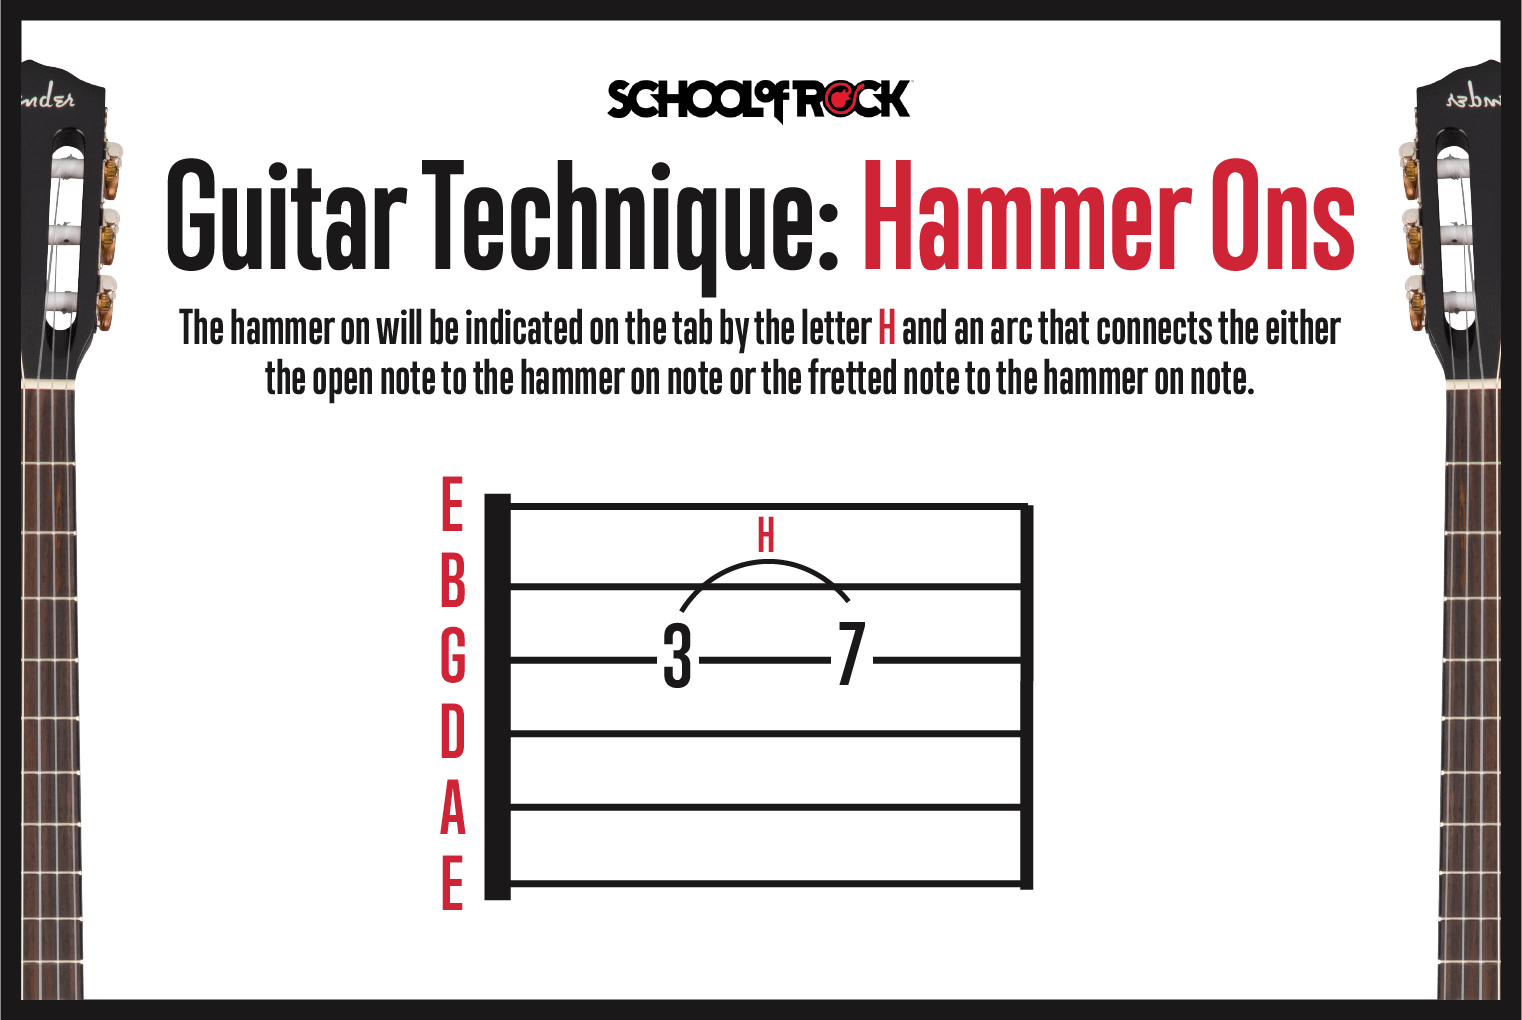 Guitar technique hammer ons